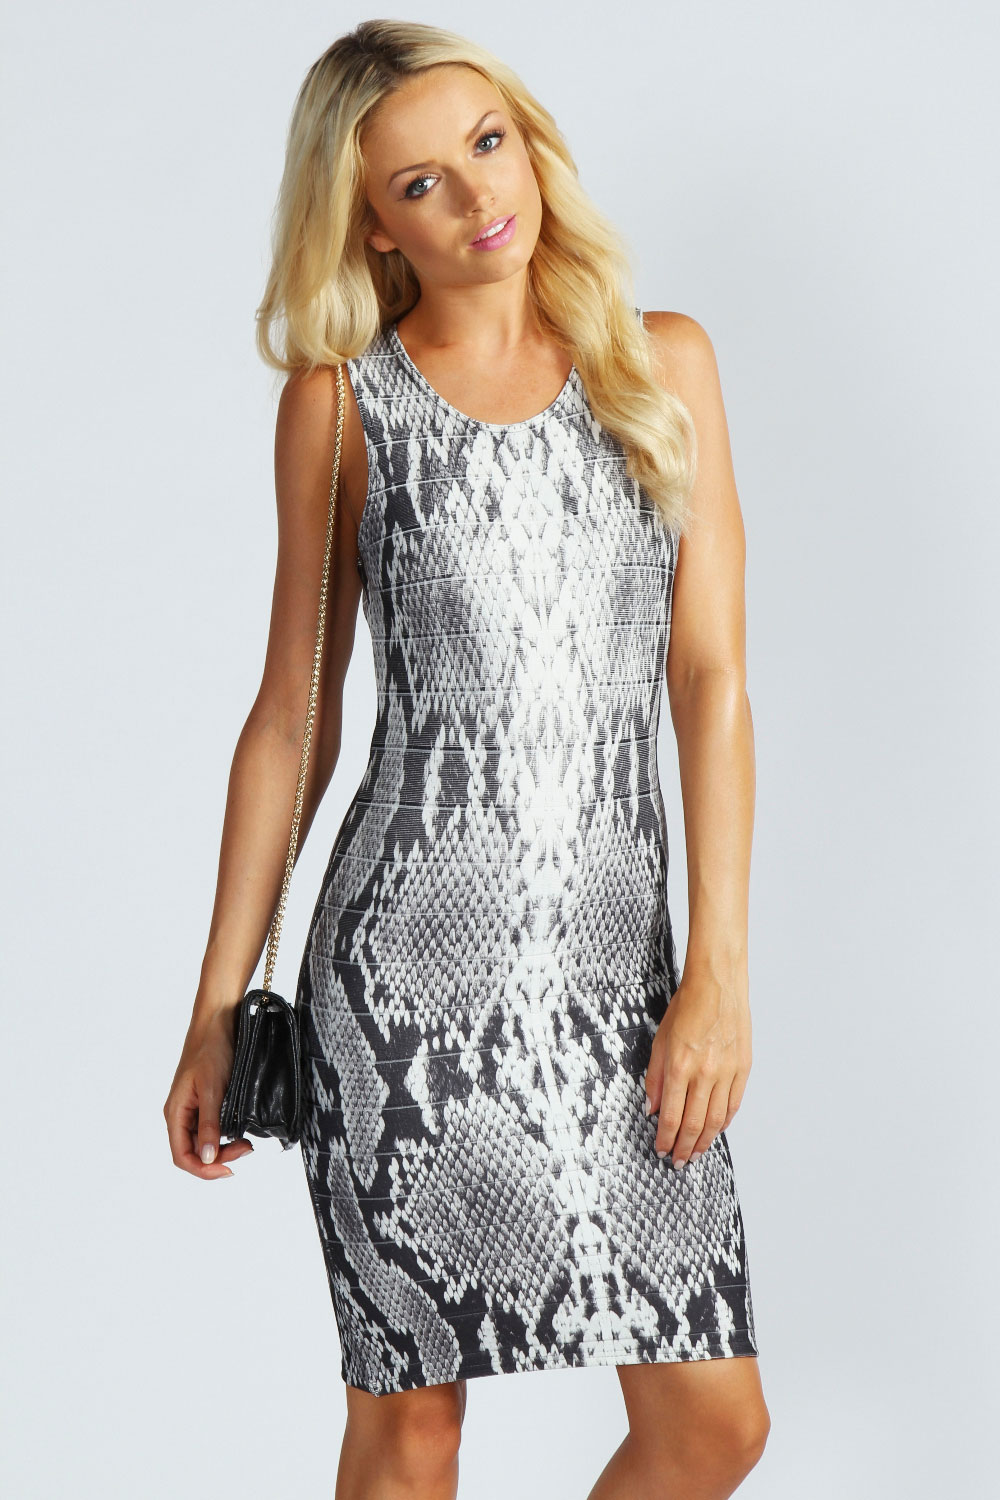 Boohoo-Abigail-Snake-Print-Bandage-Bodycon-Dress-In-Multi